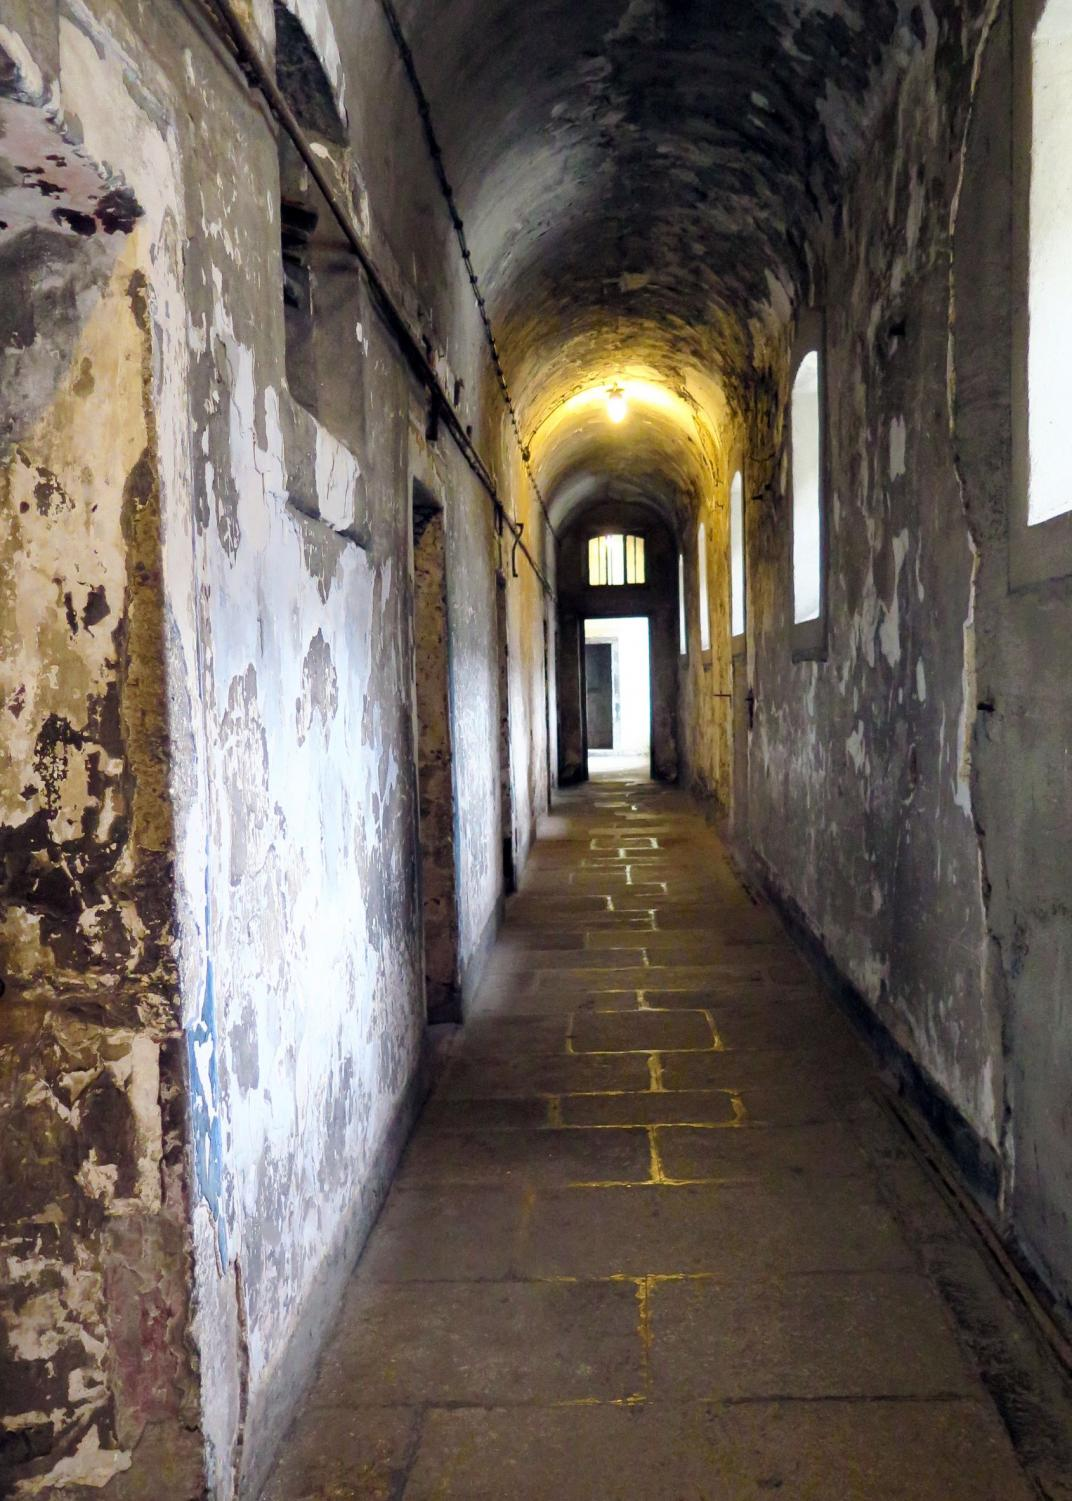 Spring break can be spent at home or away. While in Ireland, a tour option is to visit Kilmainham Gaol prison where many Irish revolutionaries were held by the British during the Anglo-Irish War.